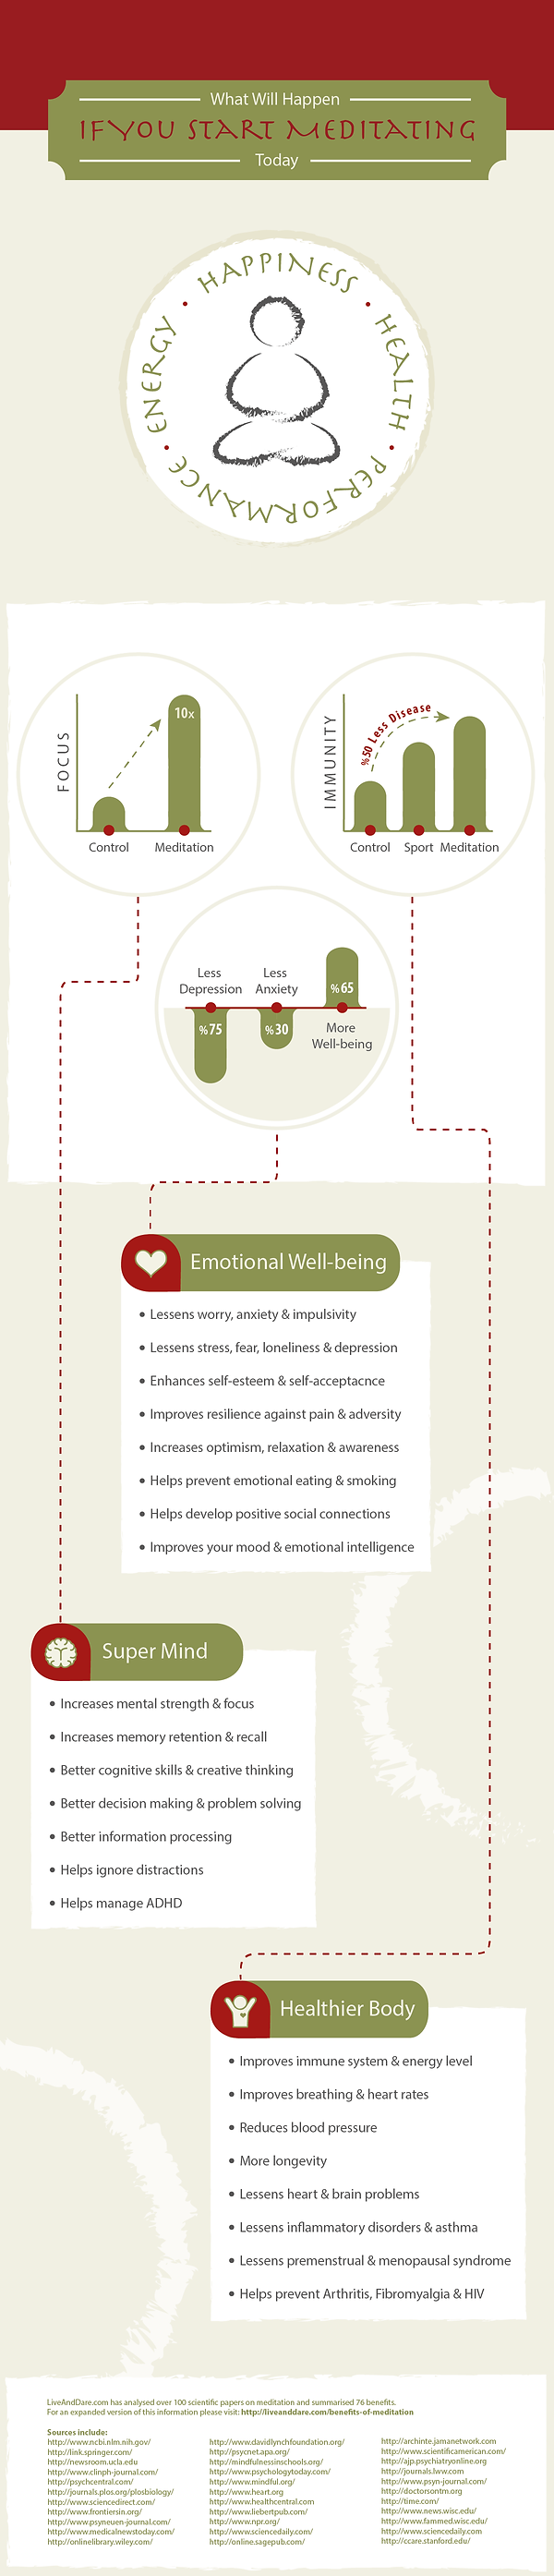 Benefits-of-Meditation-Infographic.png